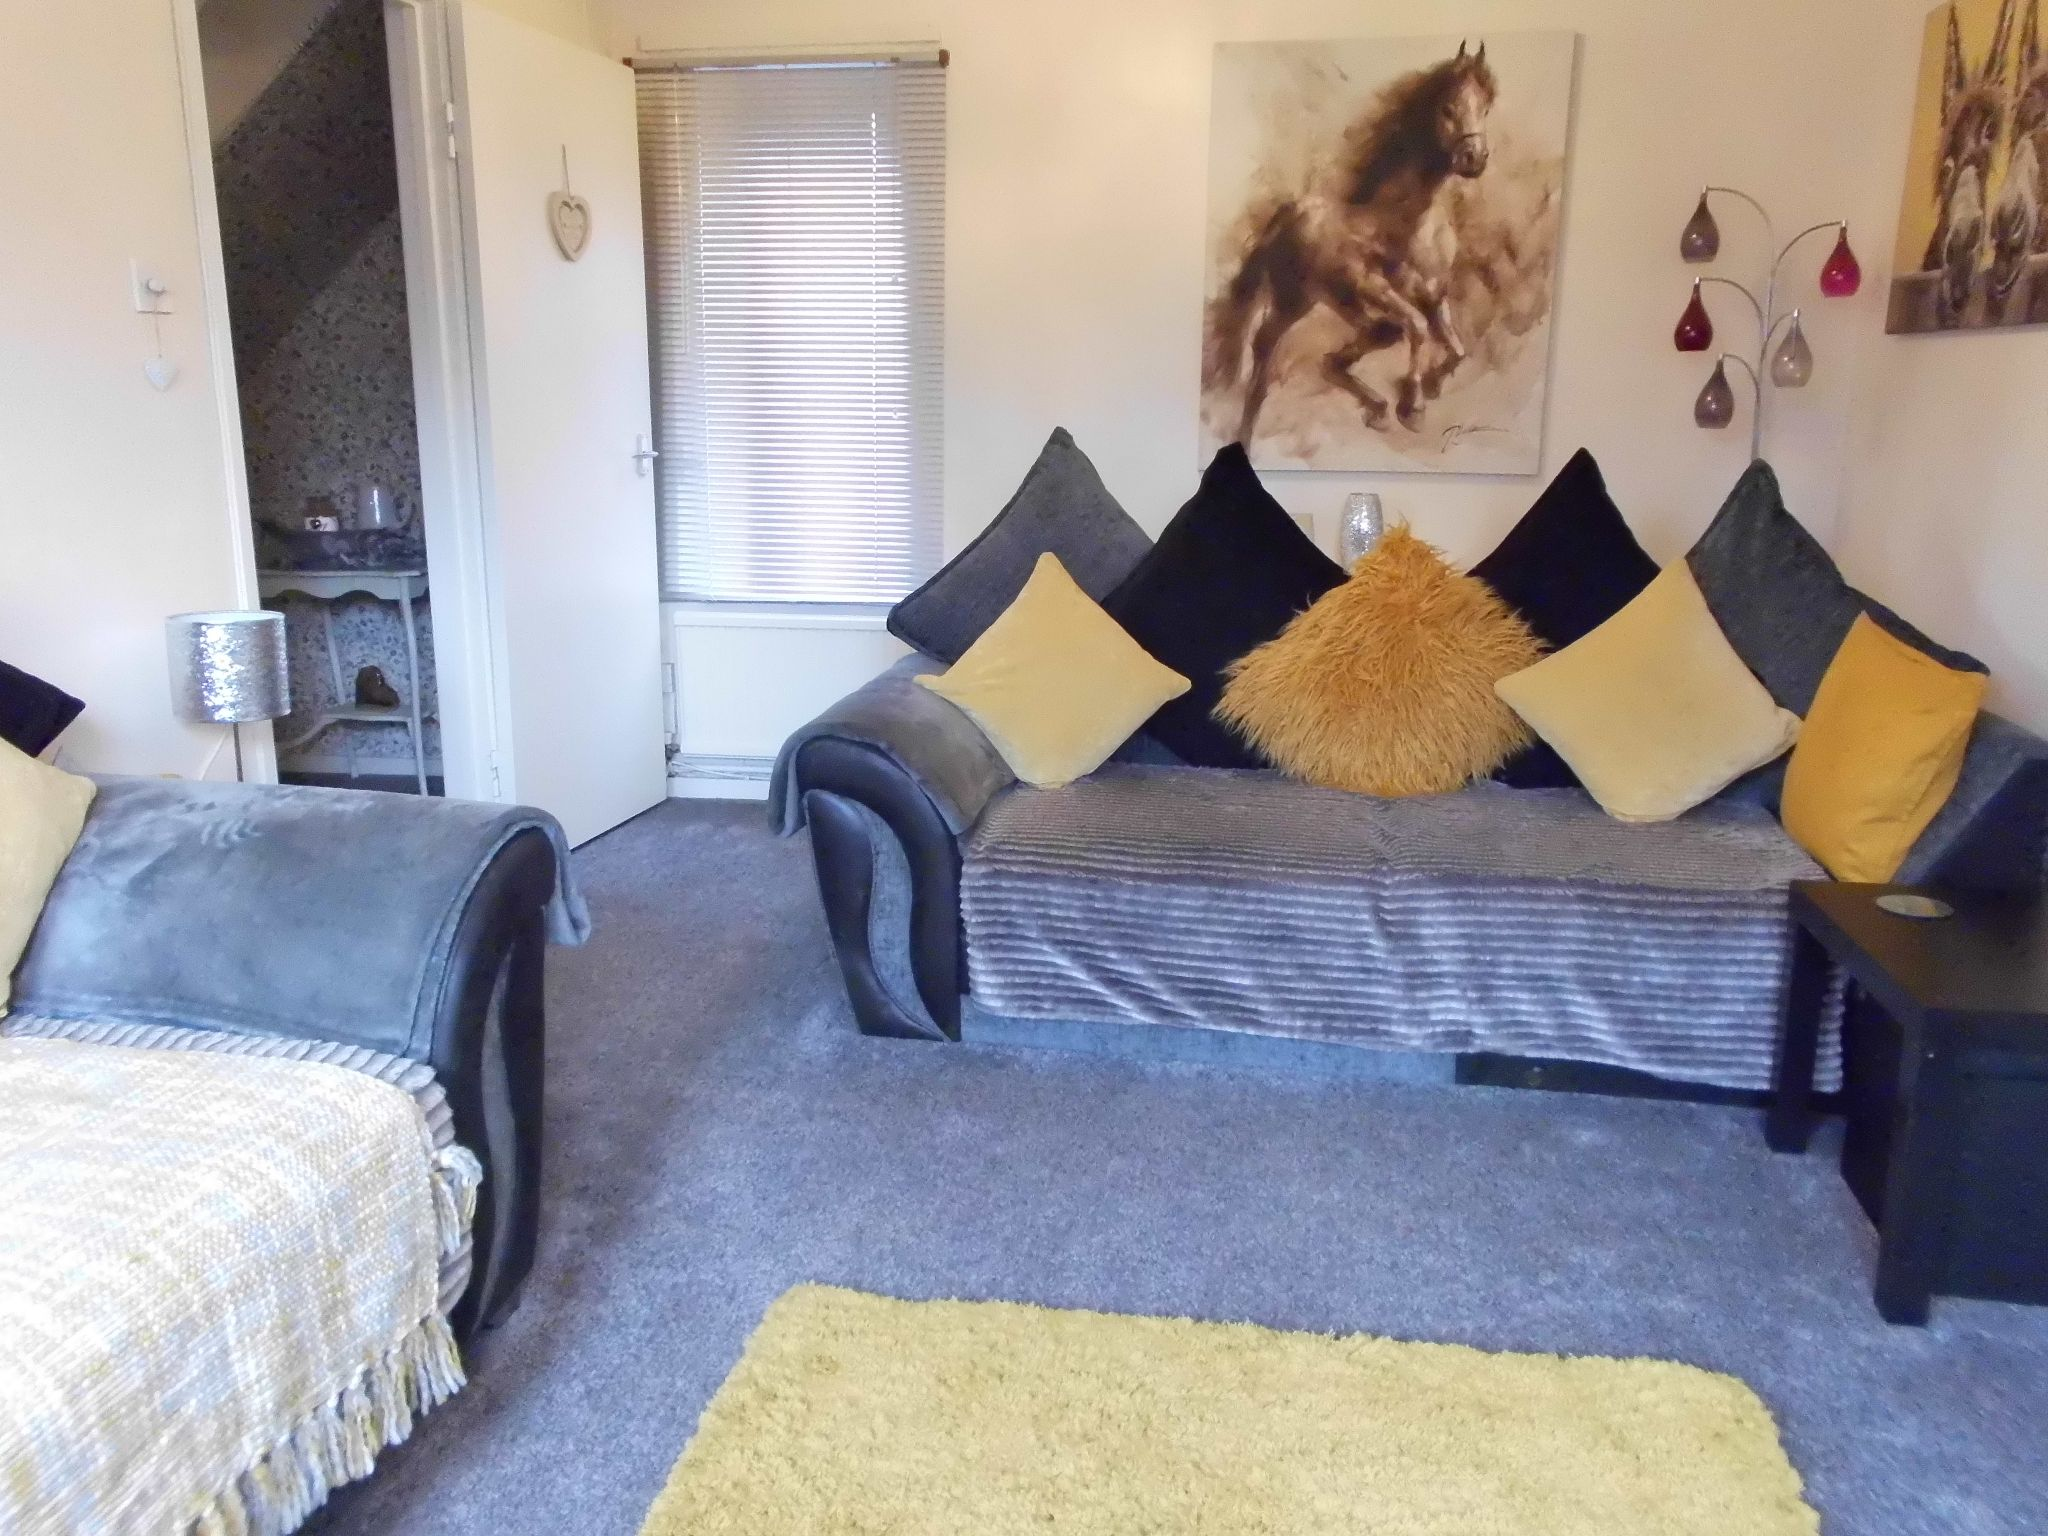 3 bedroom town house For Sale in Leicester - Photograph 2.